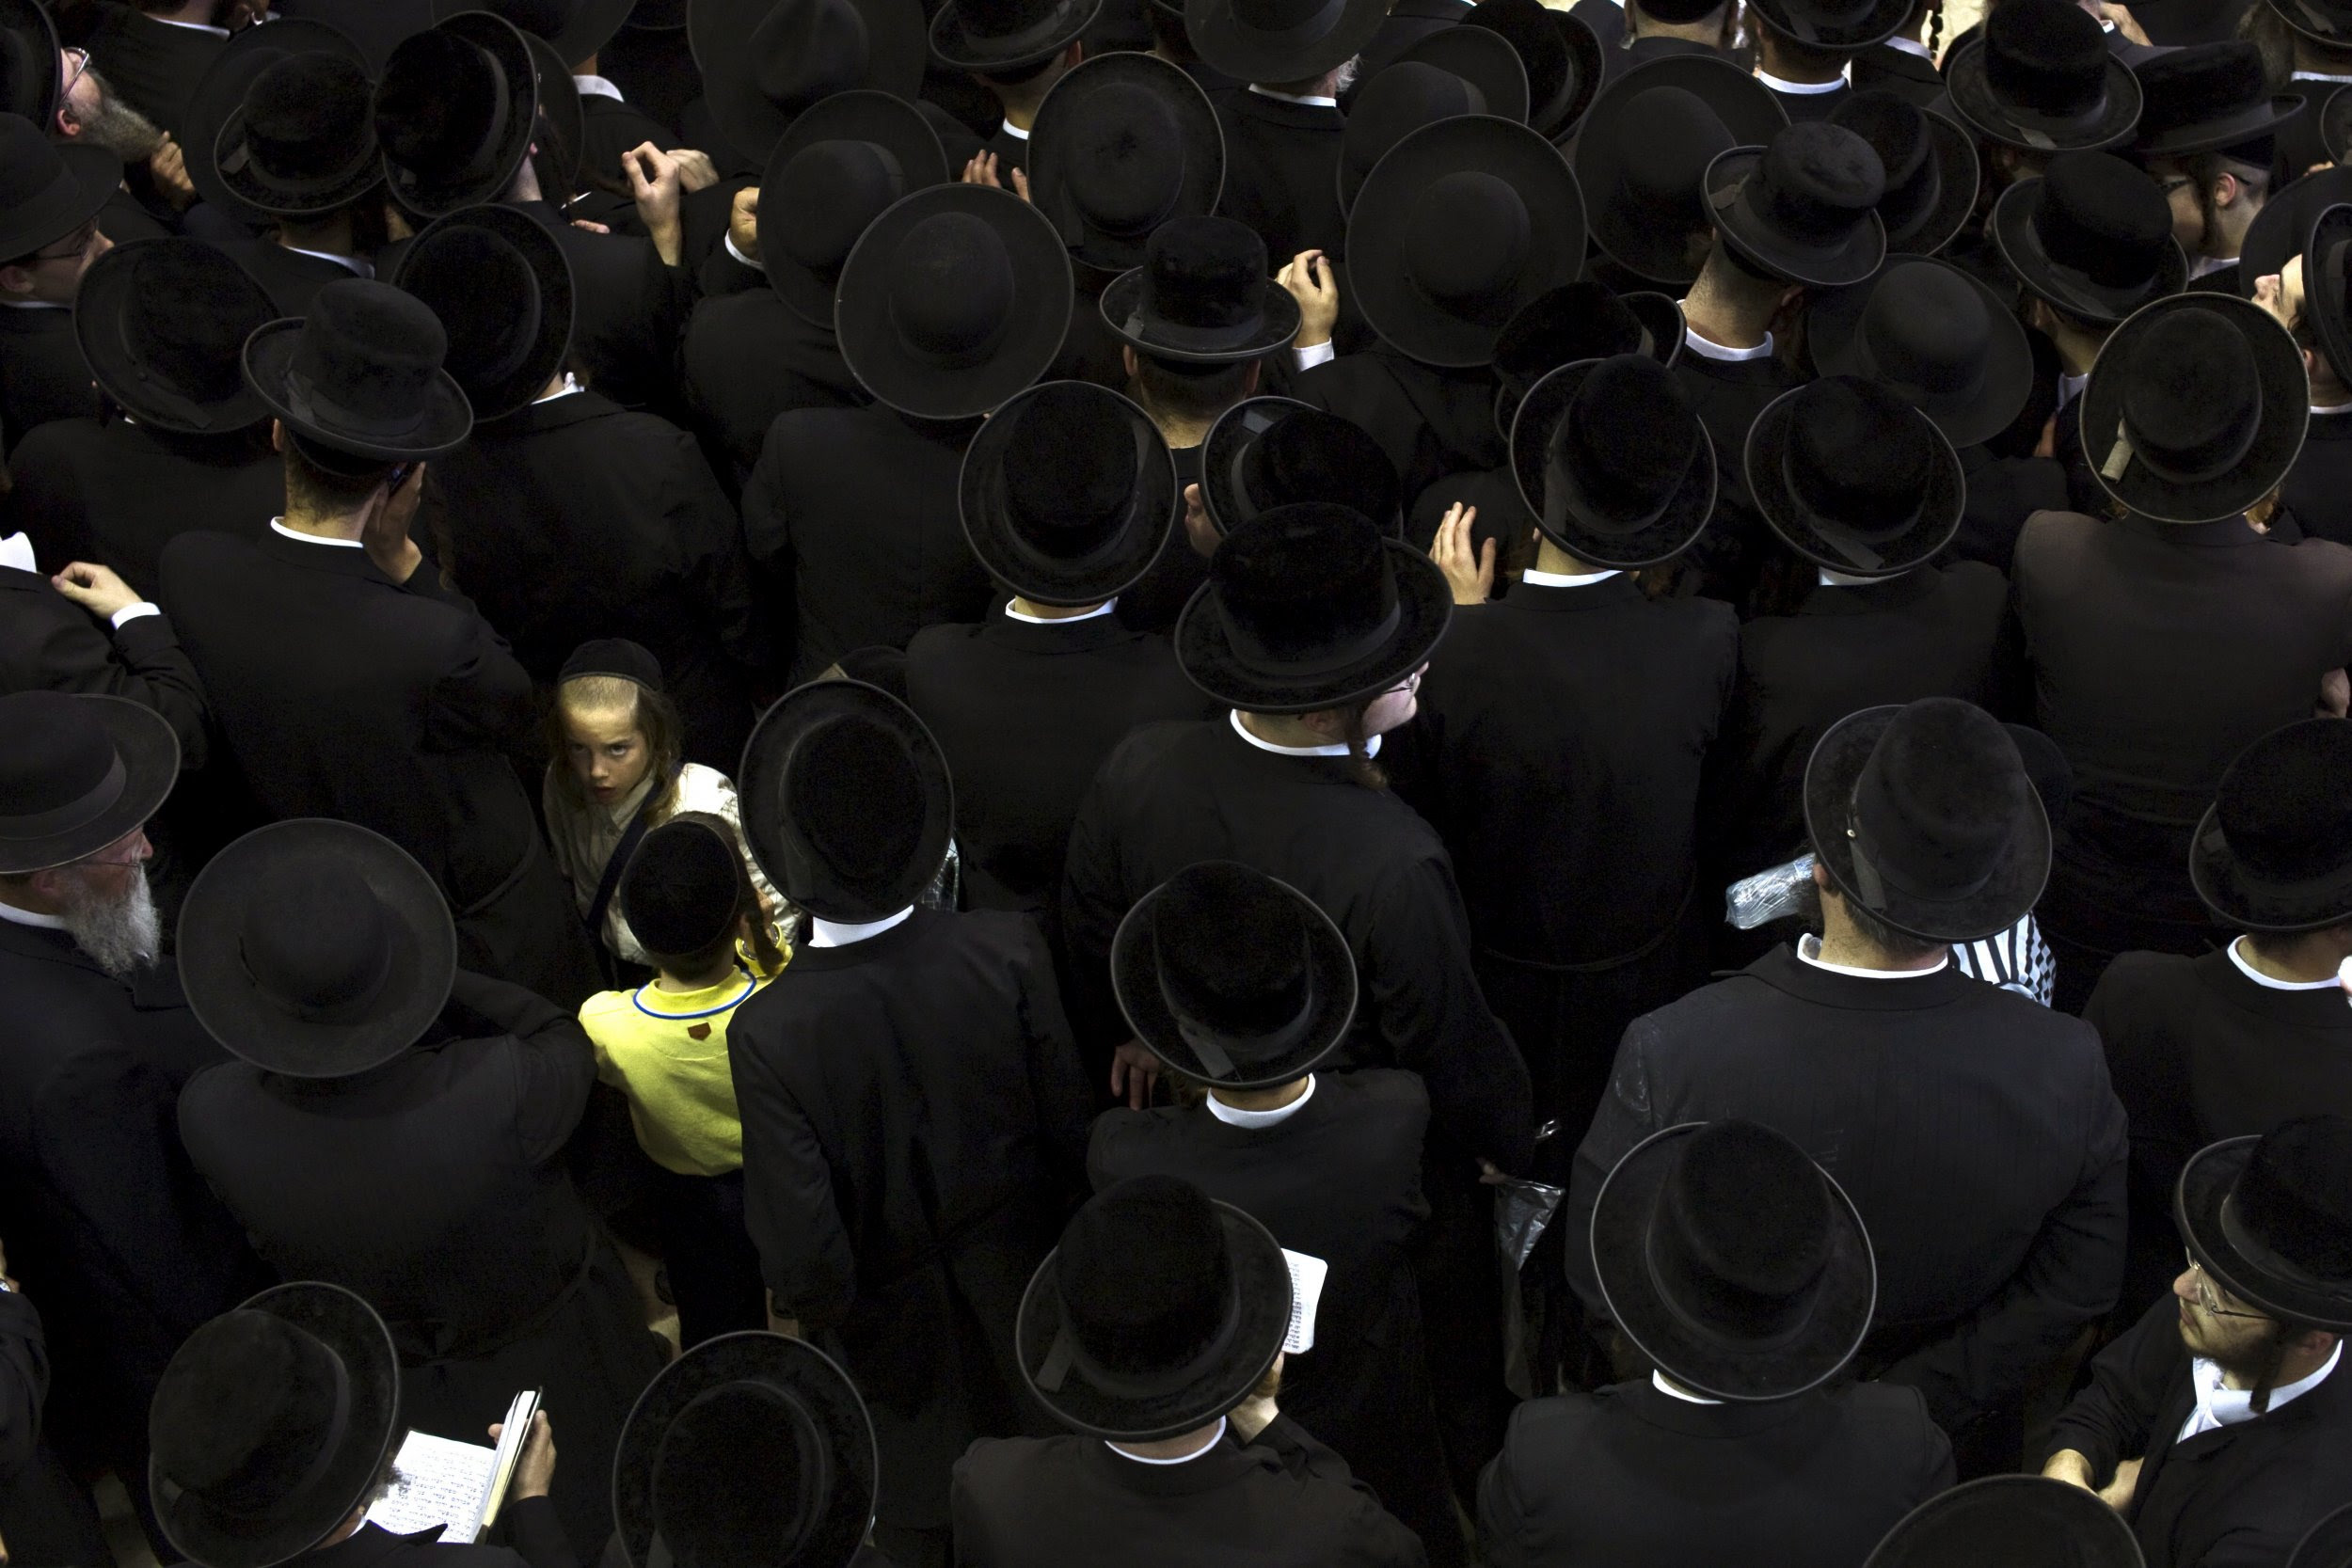 yeshiva_child_abuse_newsweek_0318